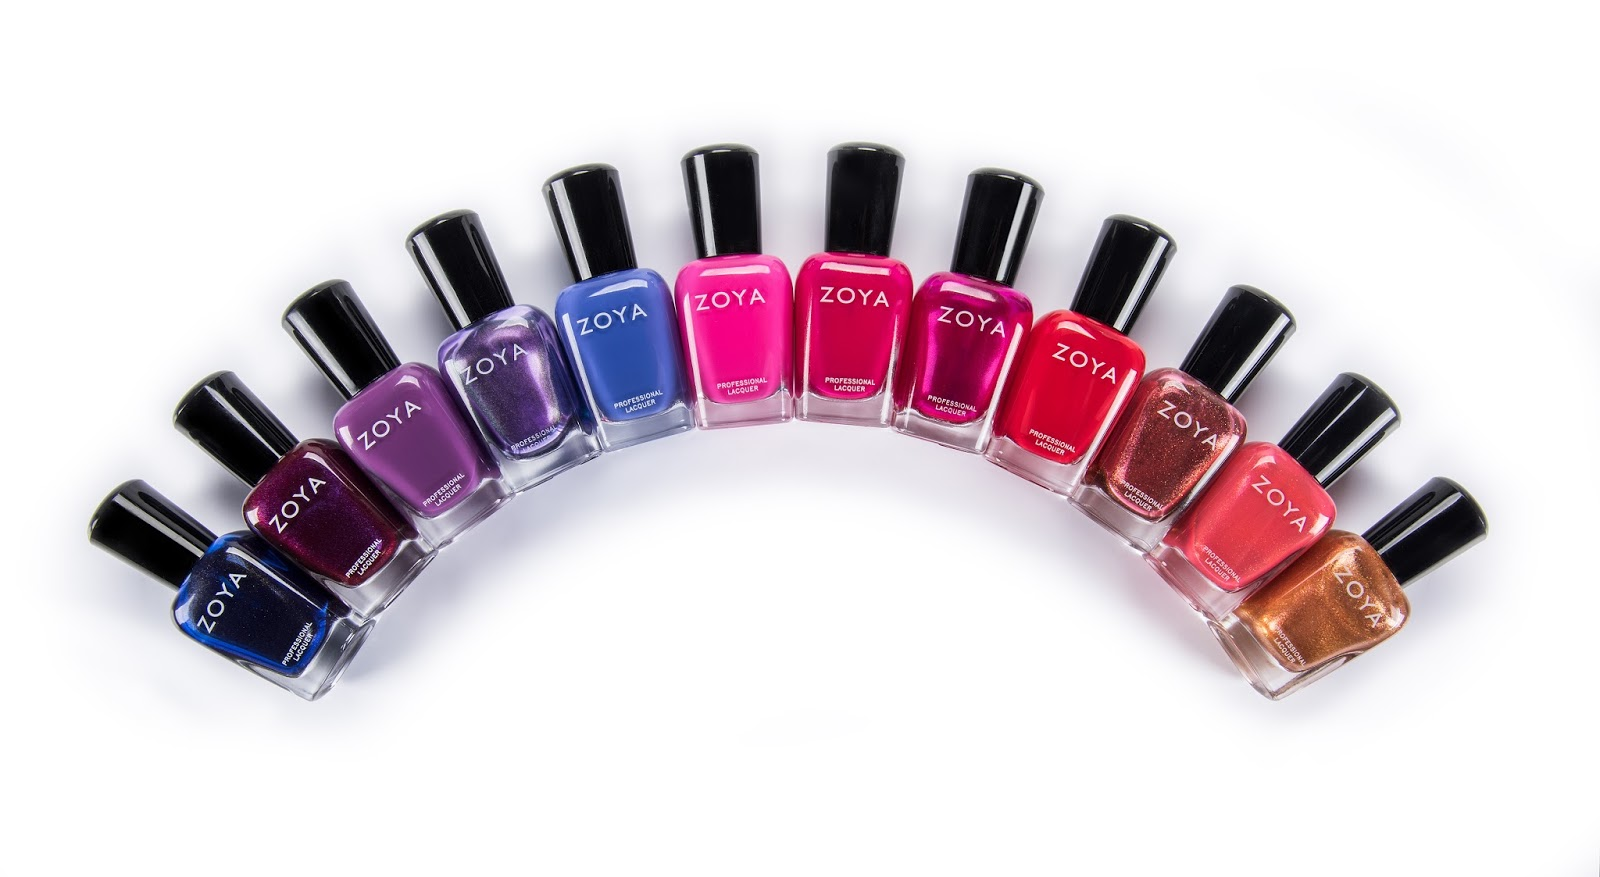 Umas nail art zoya party girls mysterious moody and electric in one the party girls zoya collection mixes a variety of finishes and tones to make sure all eyes are on you at any winter prinsesfo Choice Image